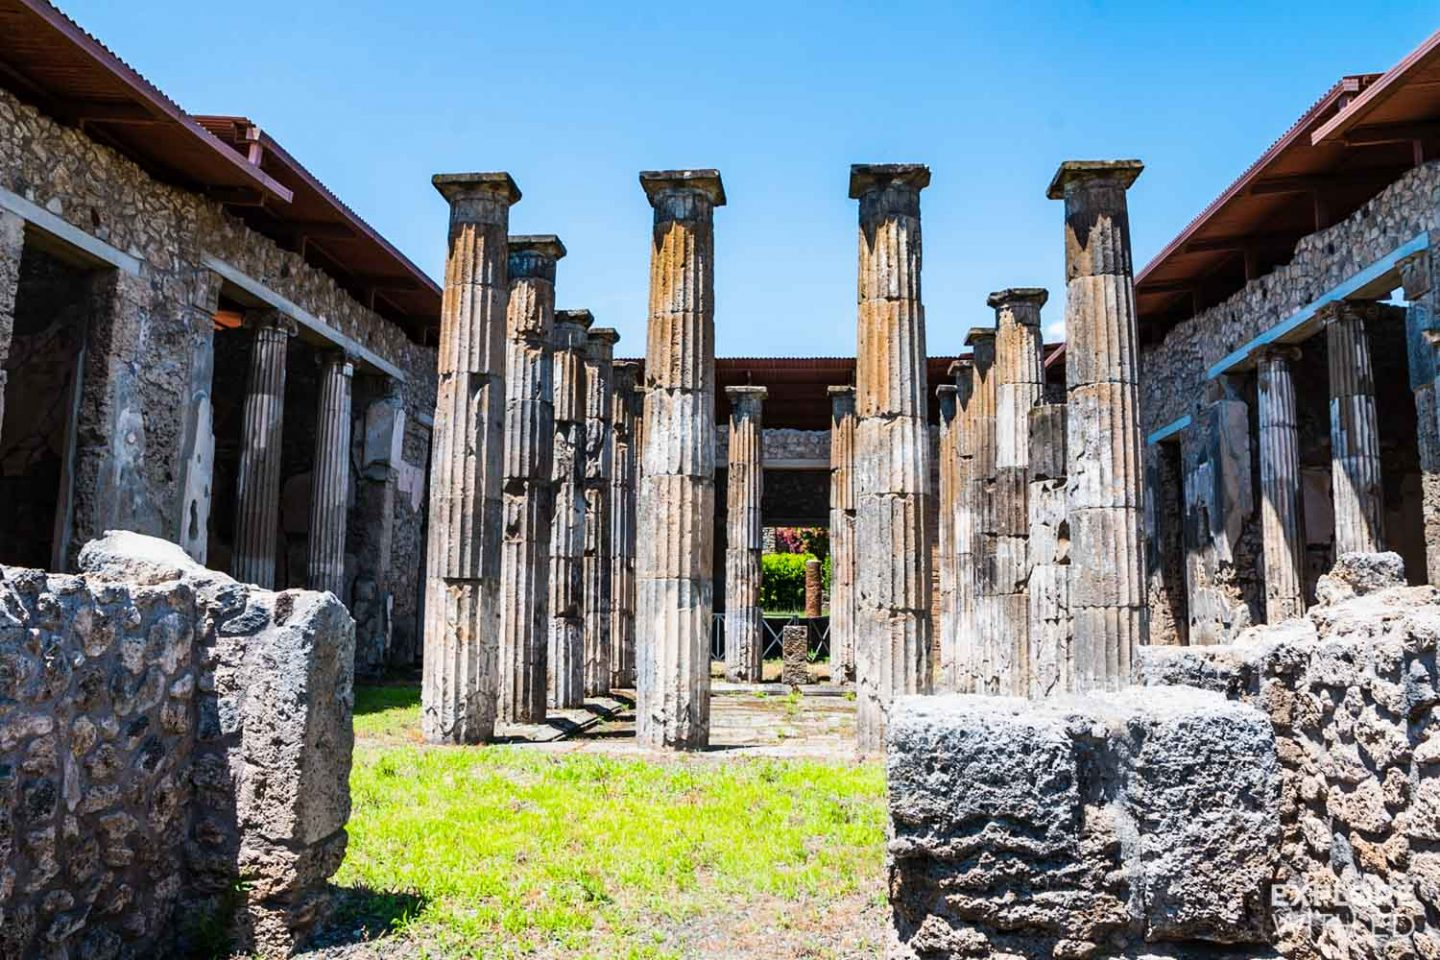 Ruins of a grand house in Pompeii